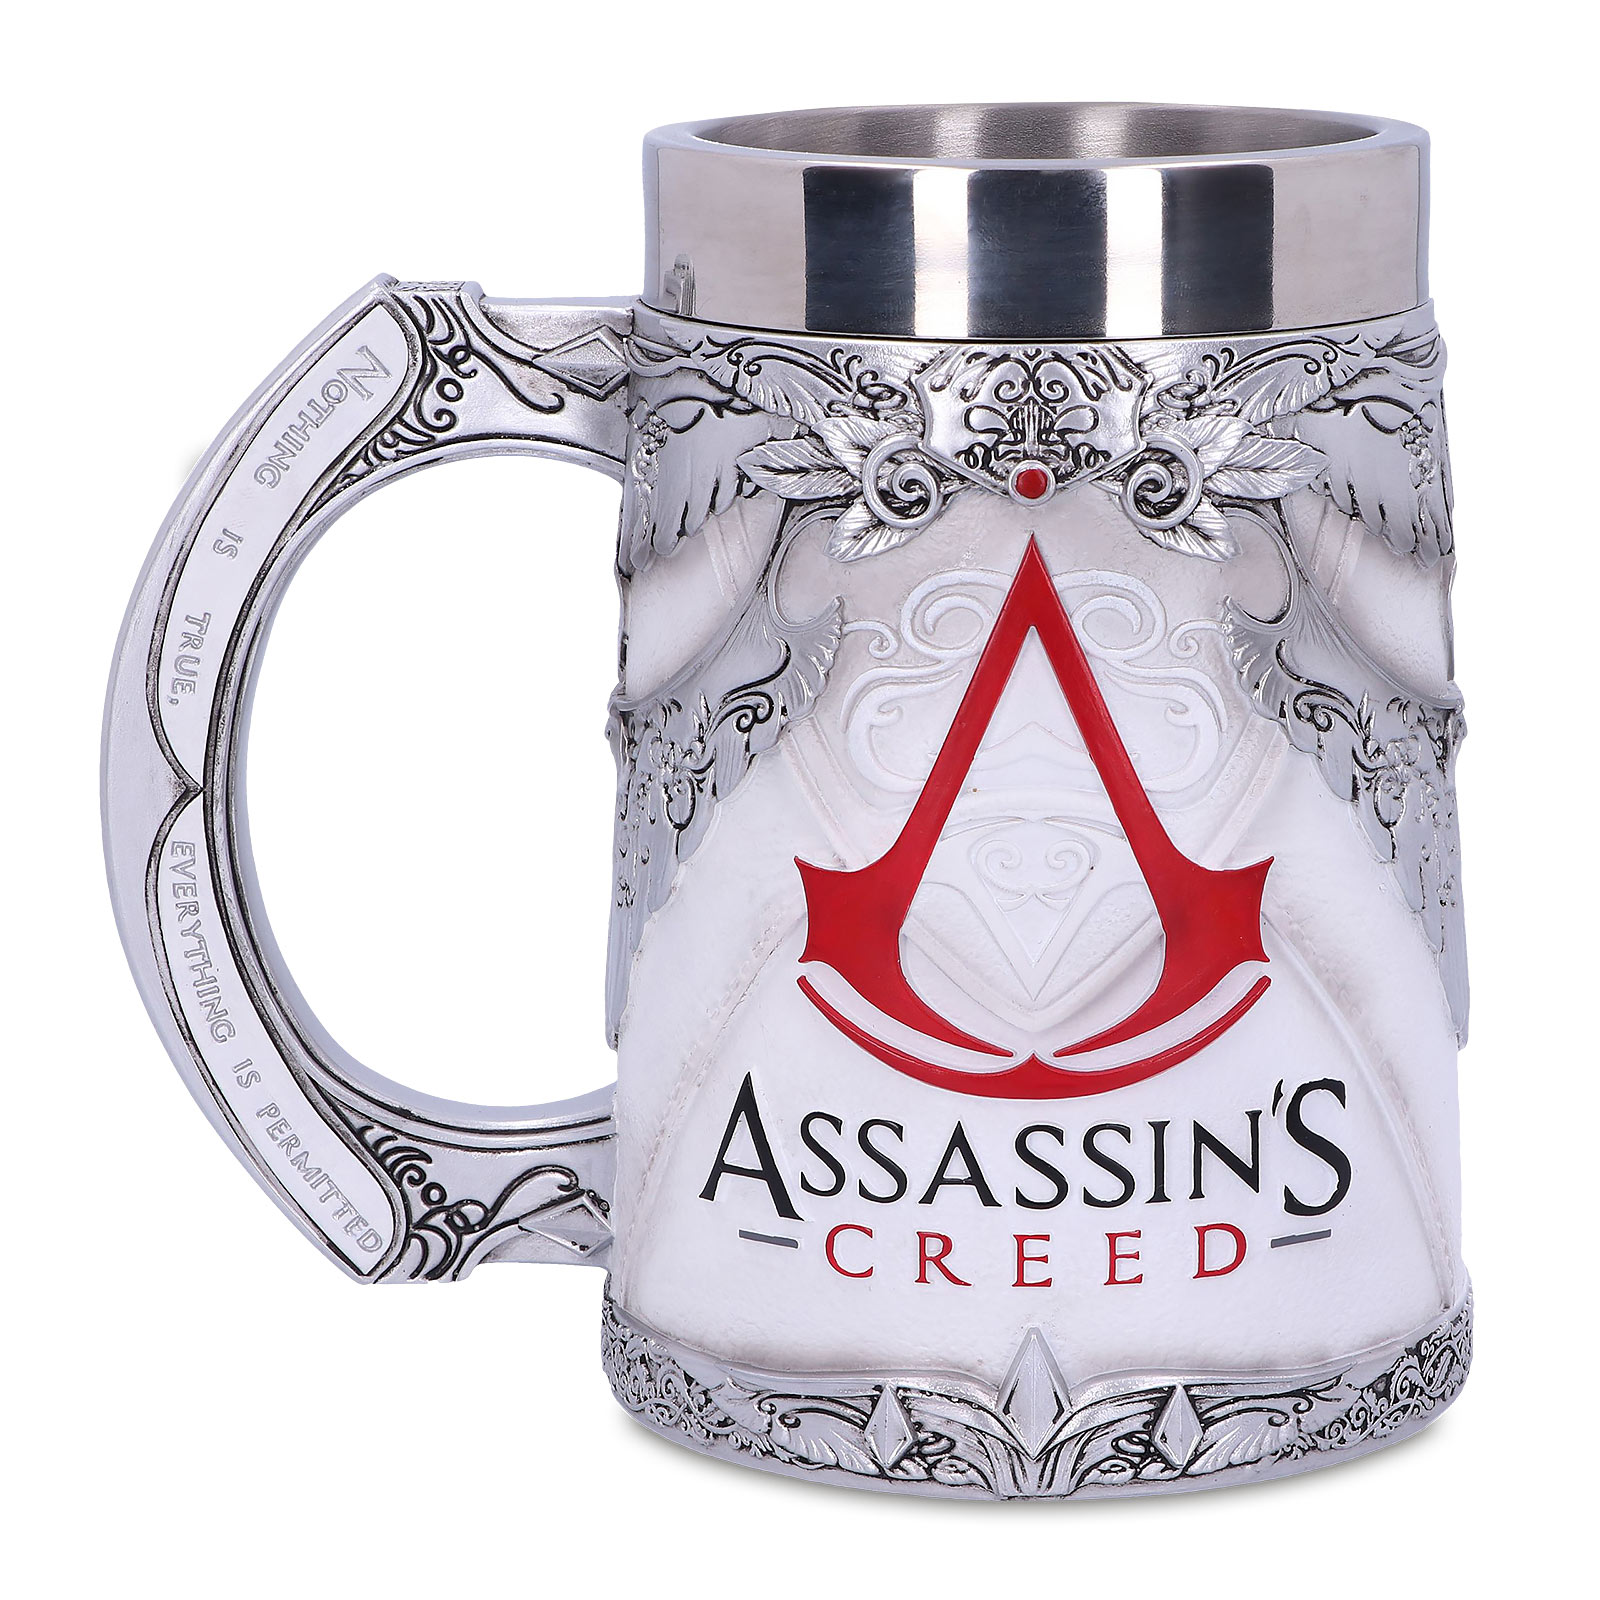 Assassin's Creed - Classic Logo Krug deluxe